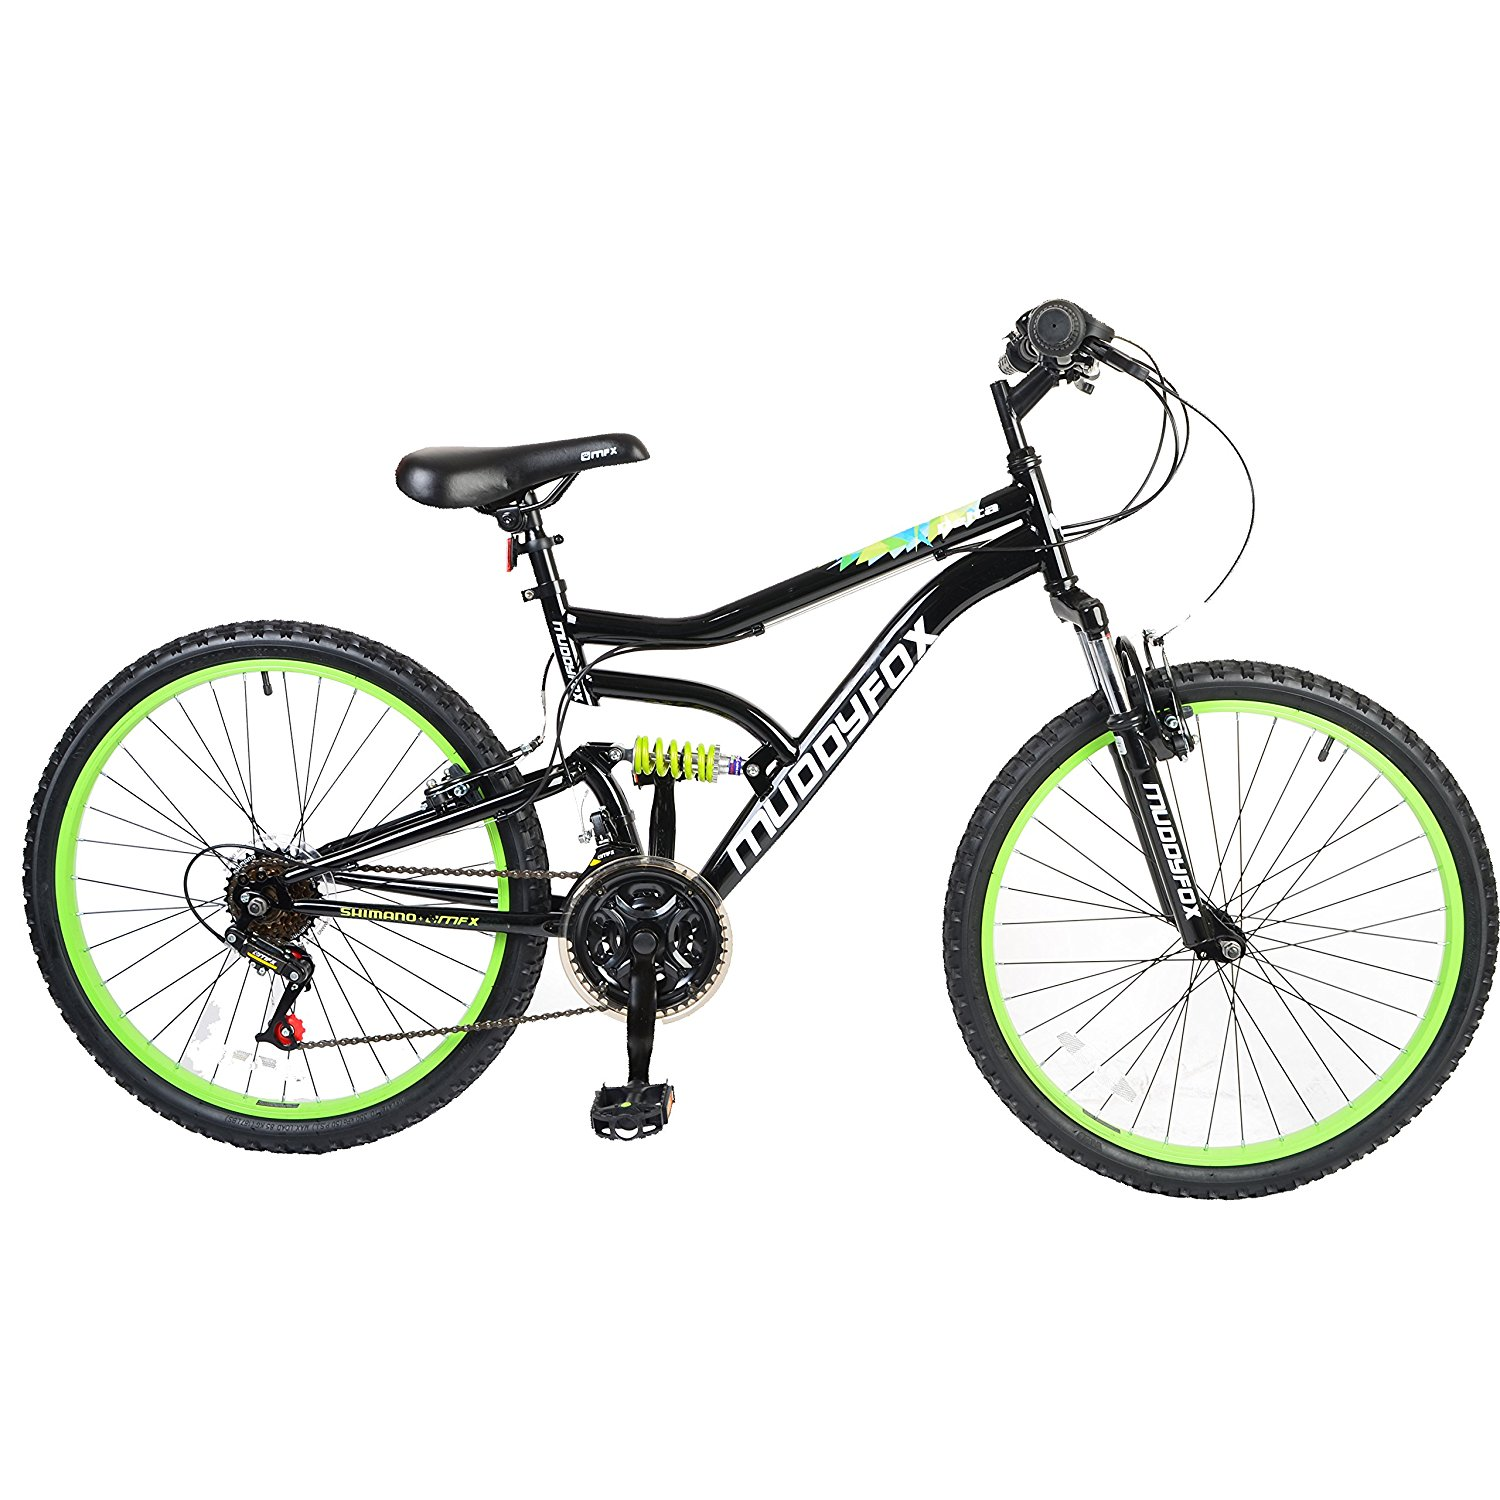 Muddyfox Delta 24 Boys Dual Suspension Bike Review Road